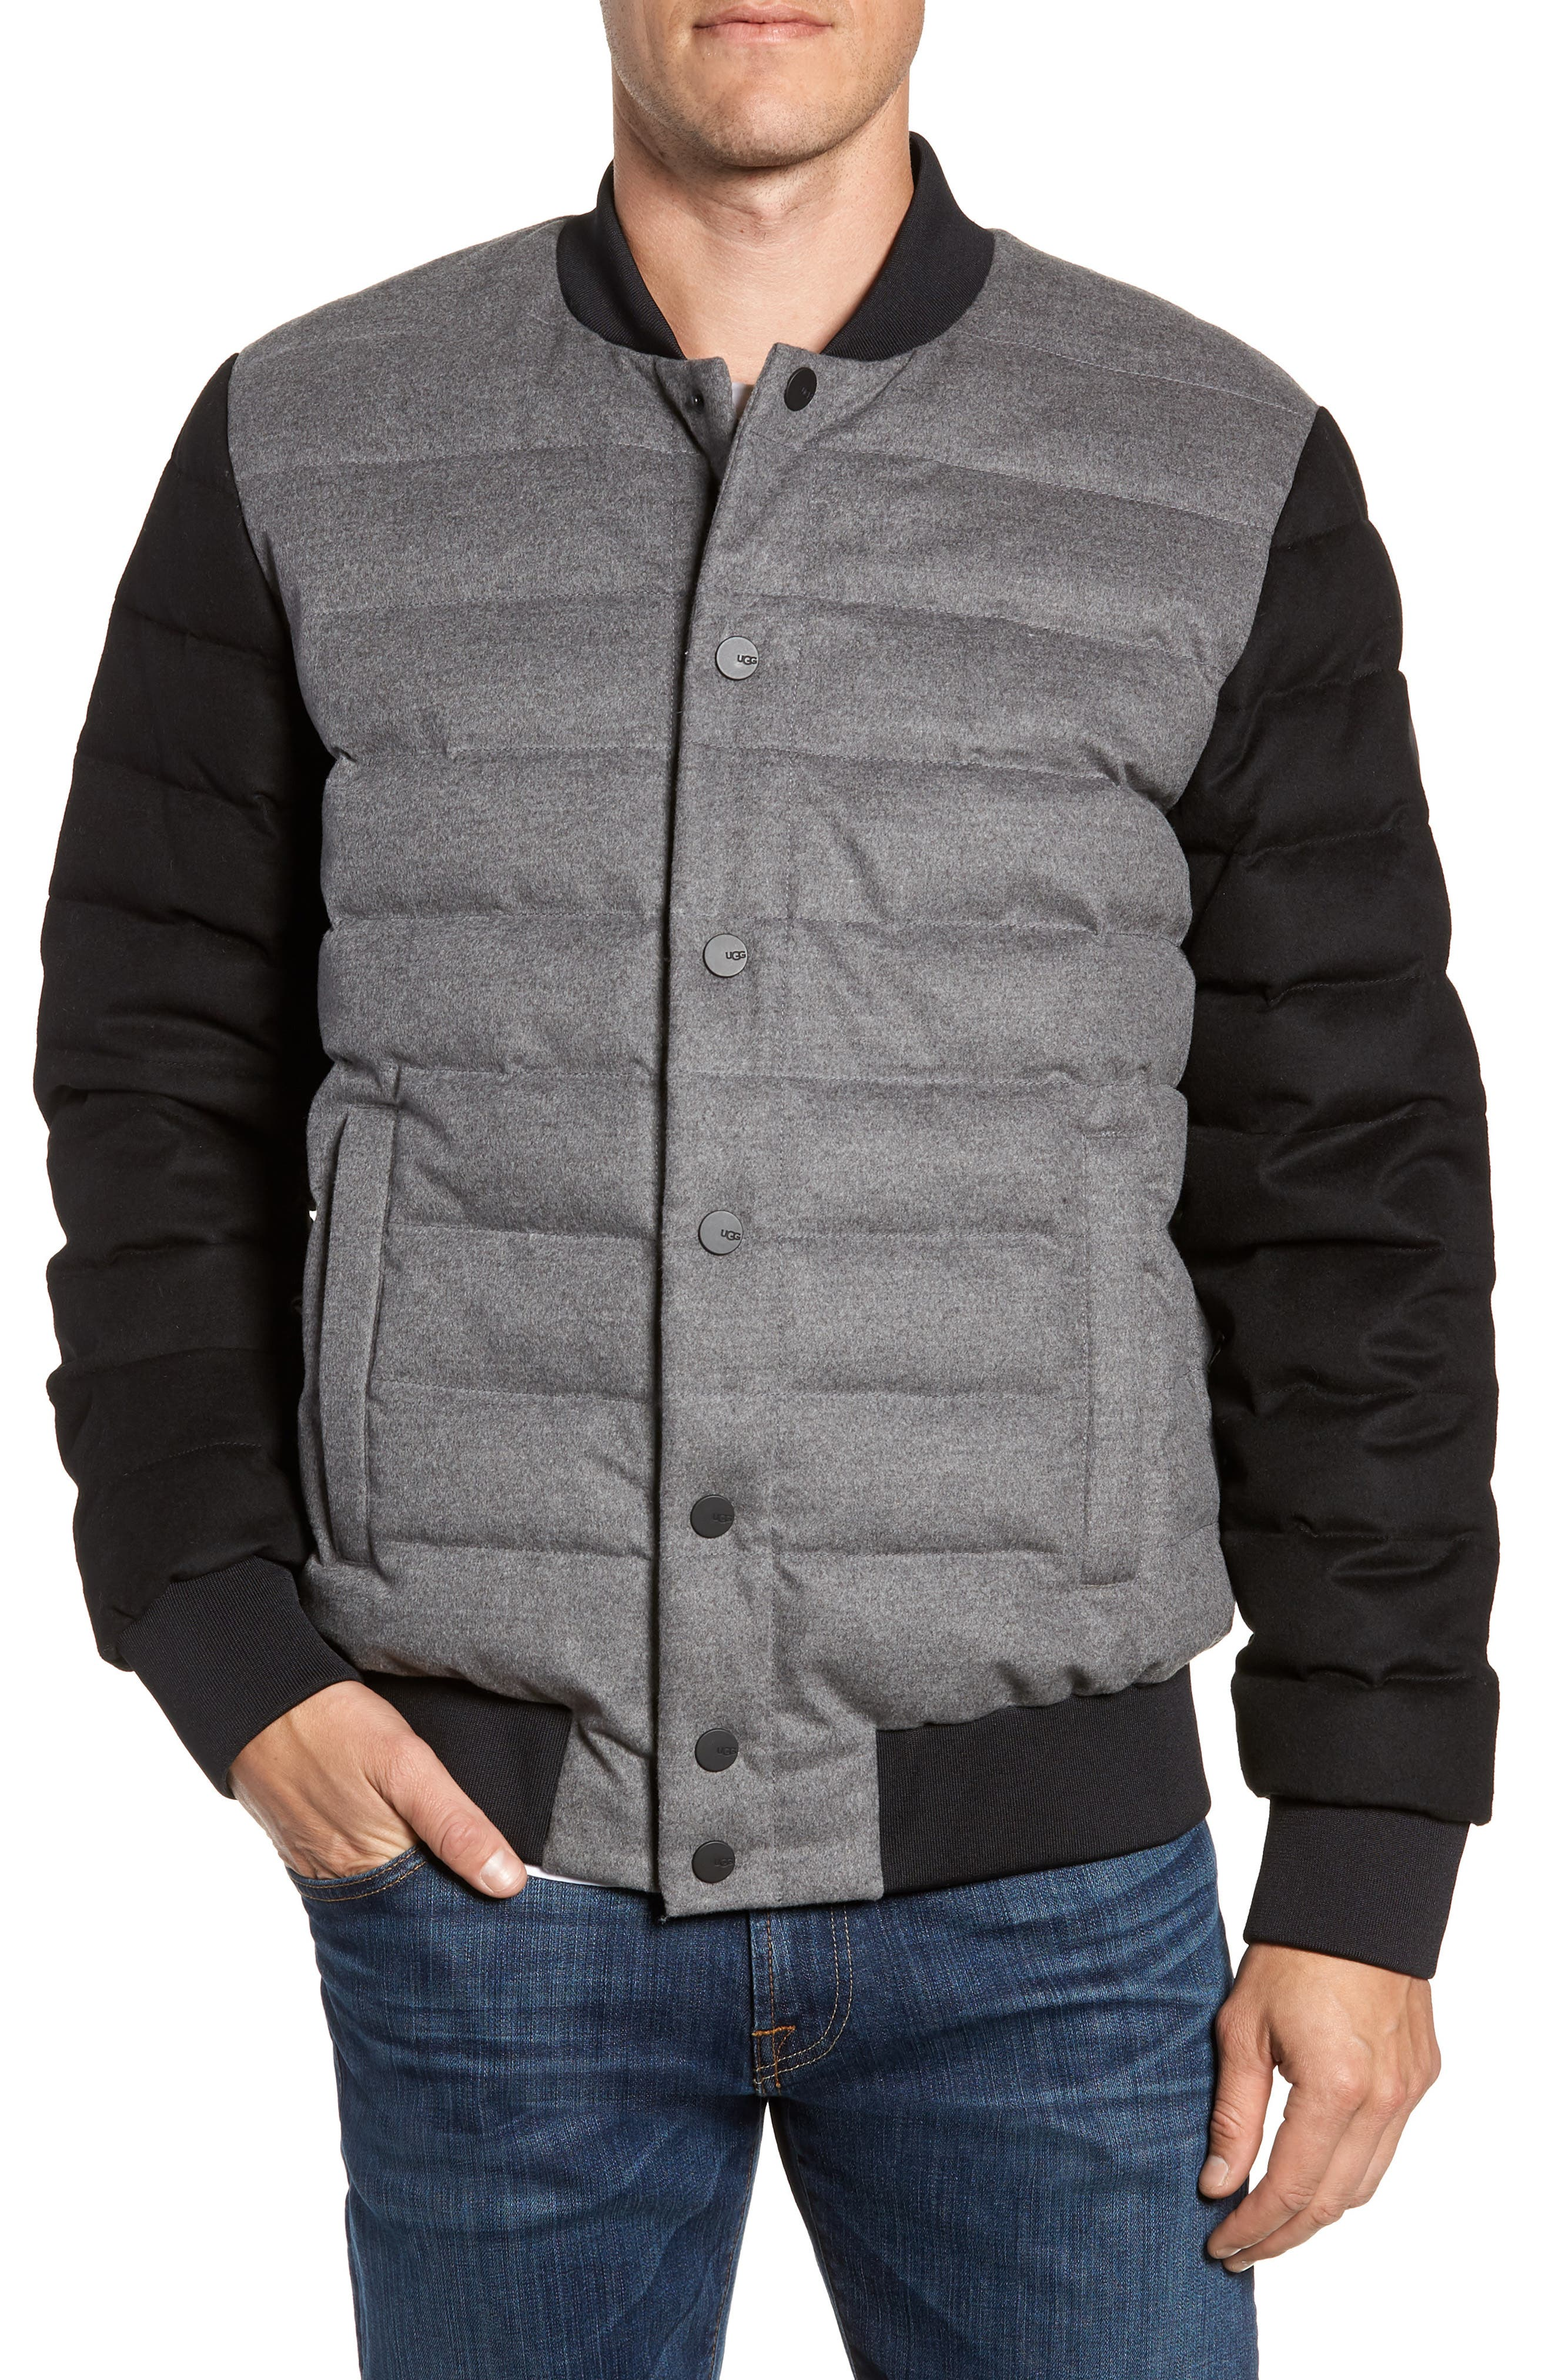 Gavin Down Bomber Jacket,                         Main,                         color, MEDIUM HEATHER GREY/ BLACK